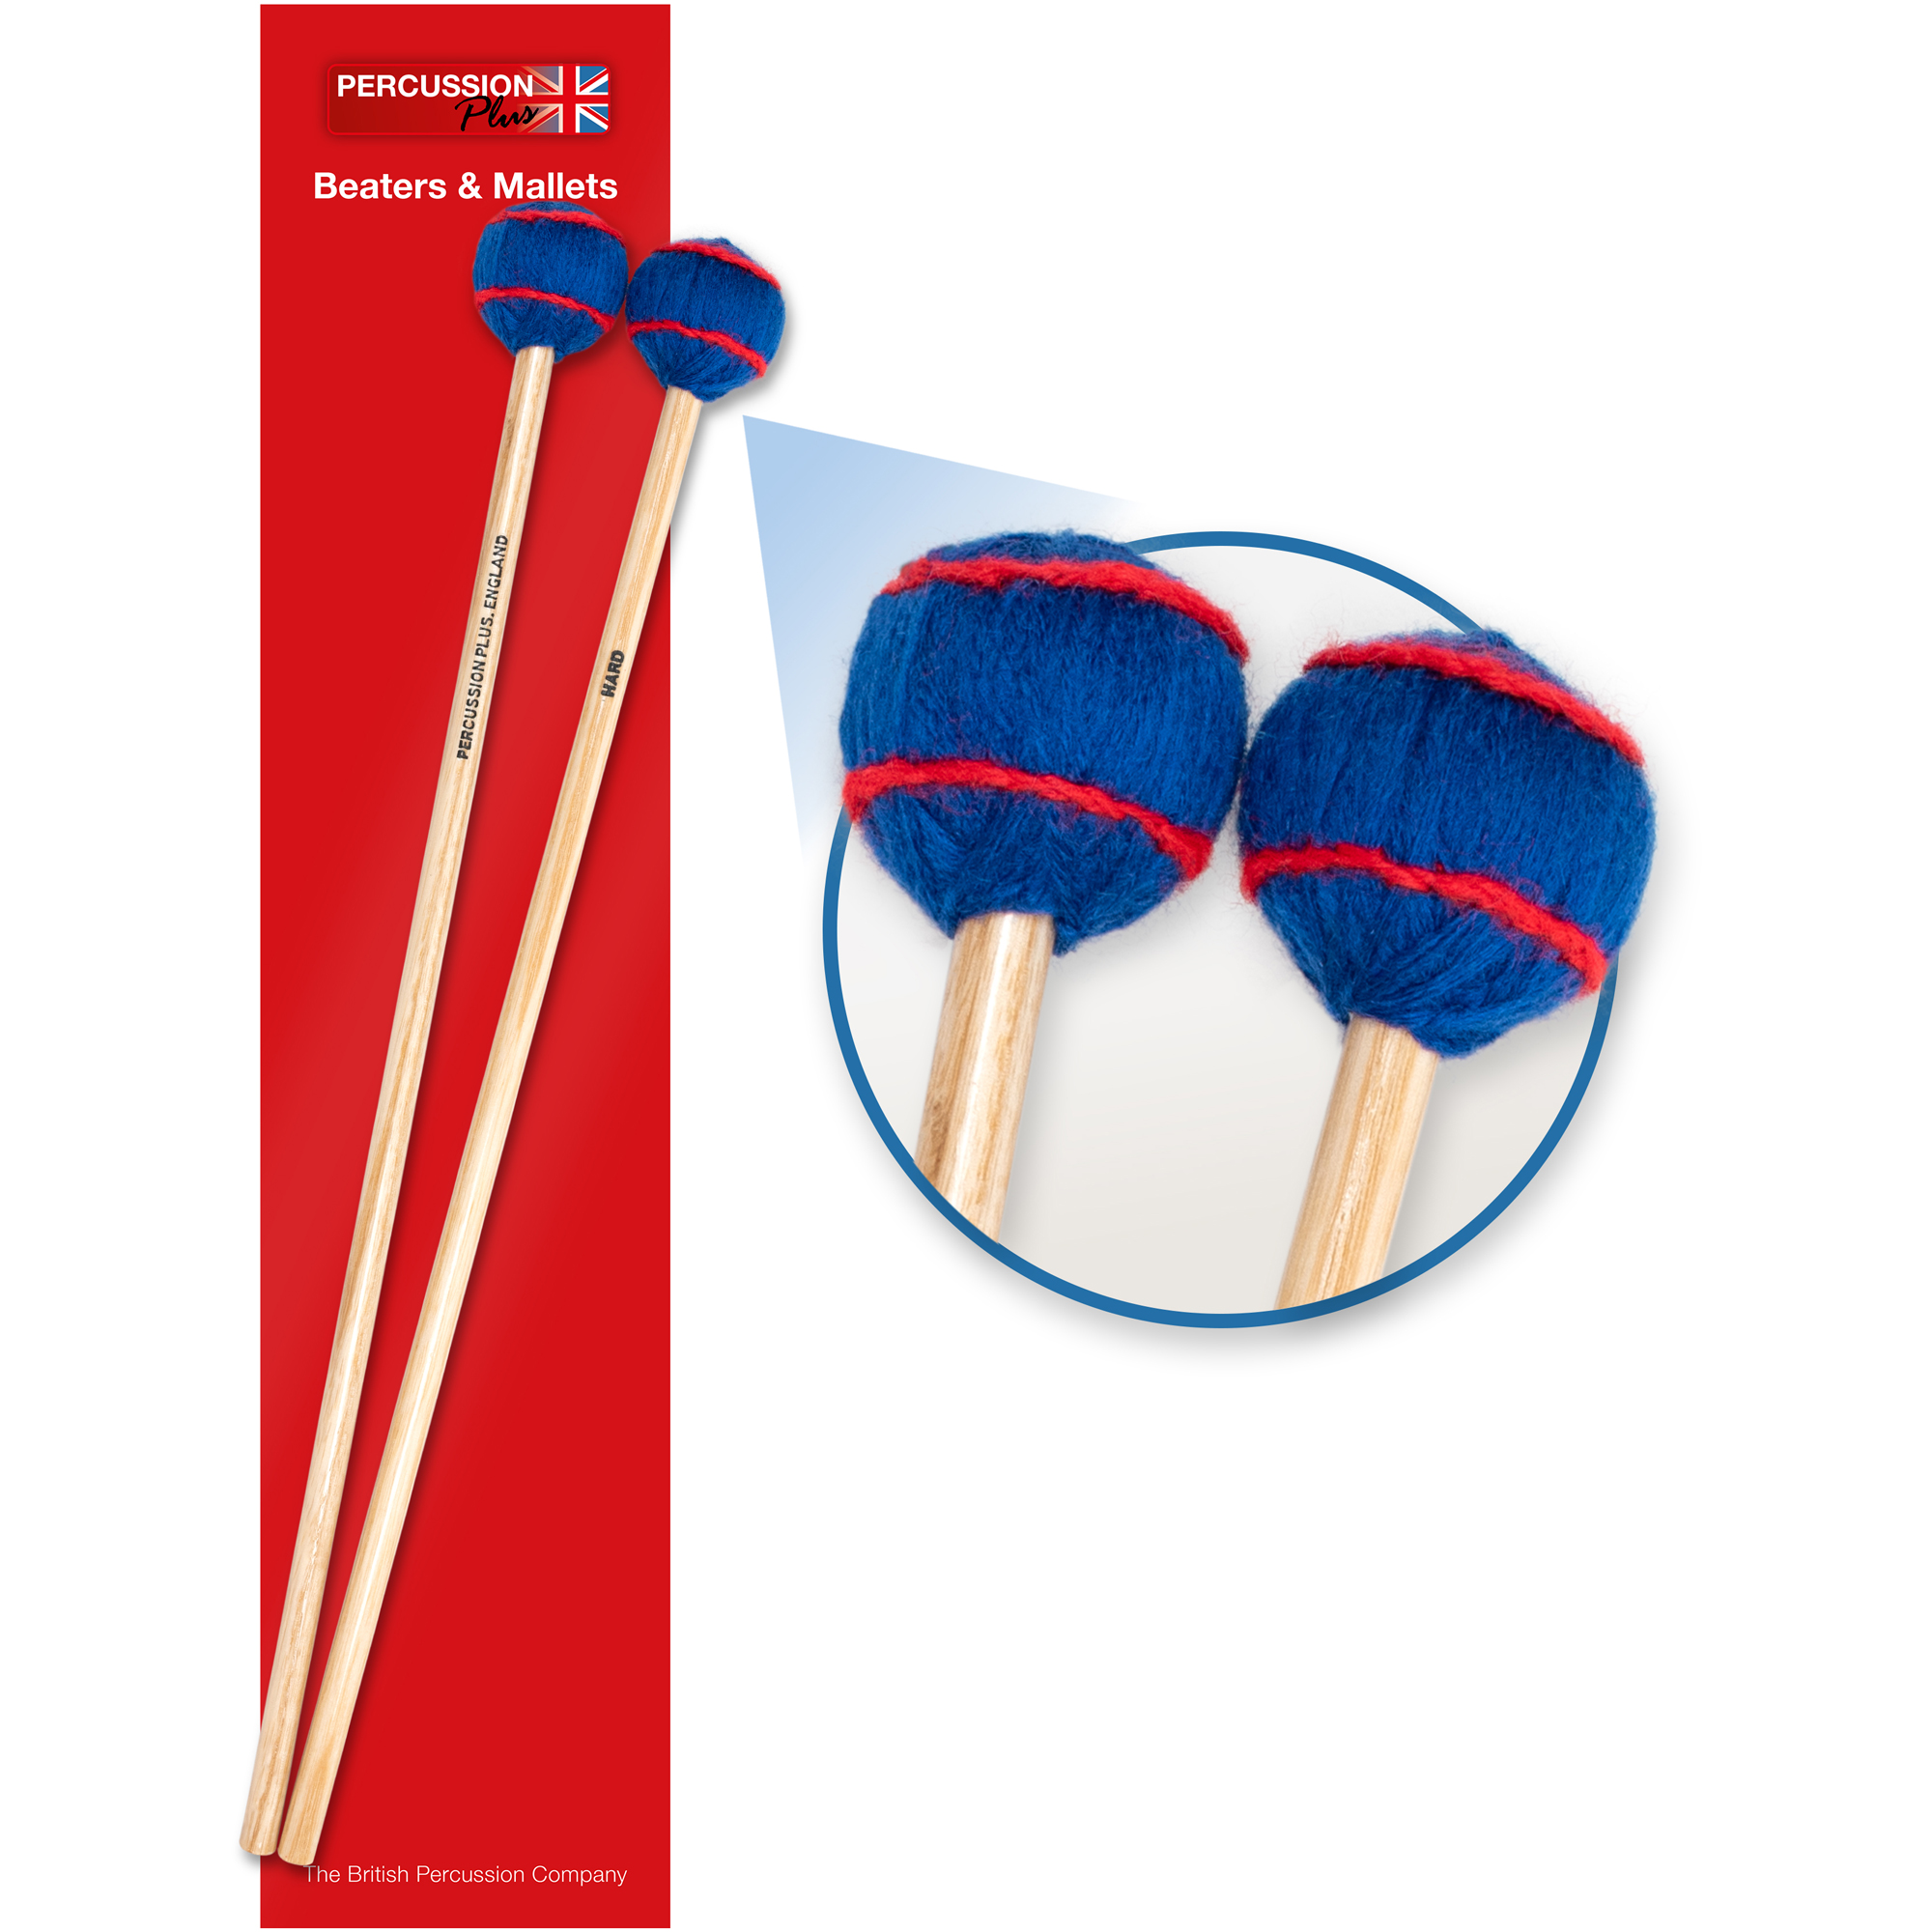 Percussion Plus pair of wool mallets - hard